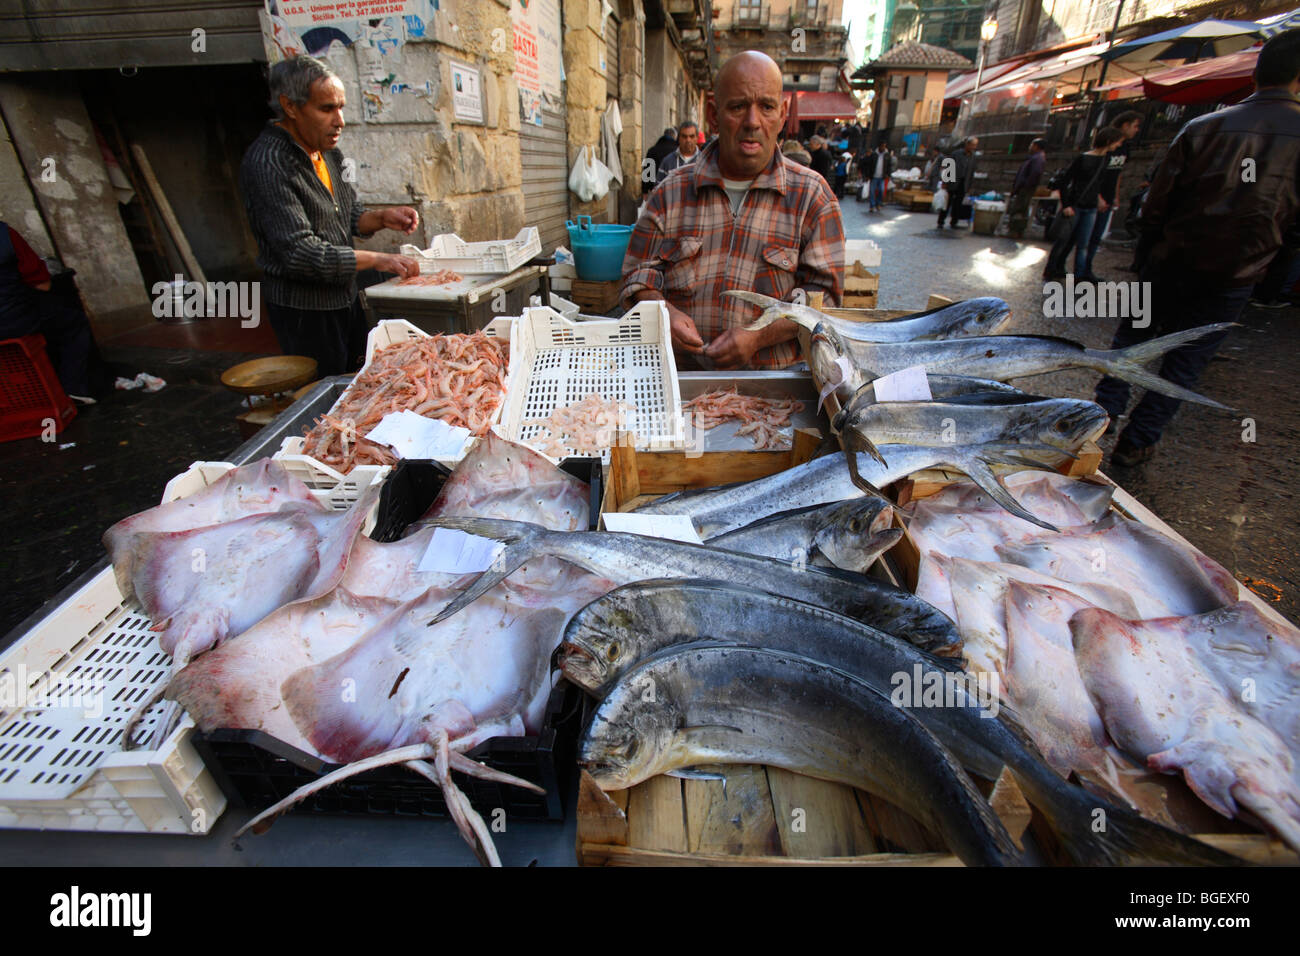 The fish market in catania sicily italy stock photo for Fish market ct